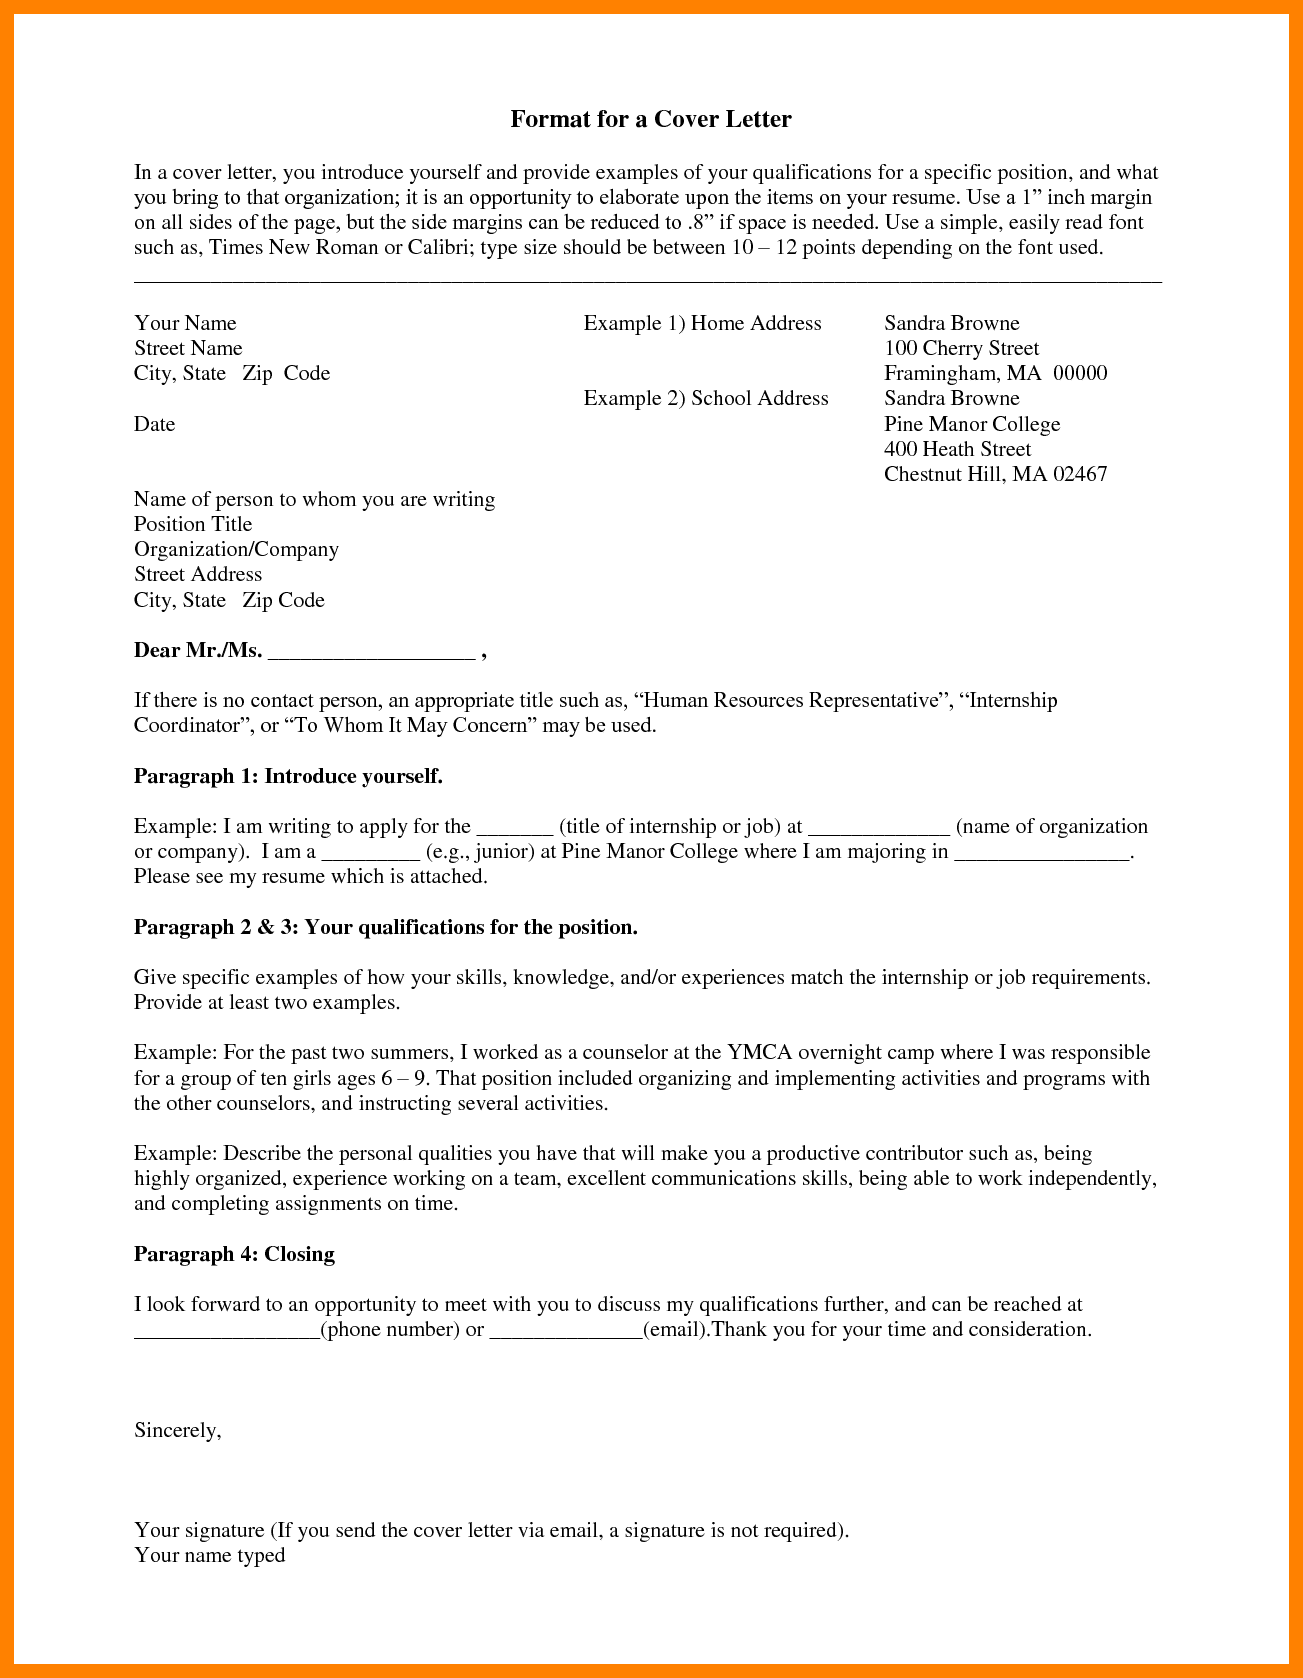 Soc 2 Report Sample and 6 Sample Of Introducing Yourself Packaging Clerks